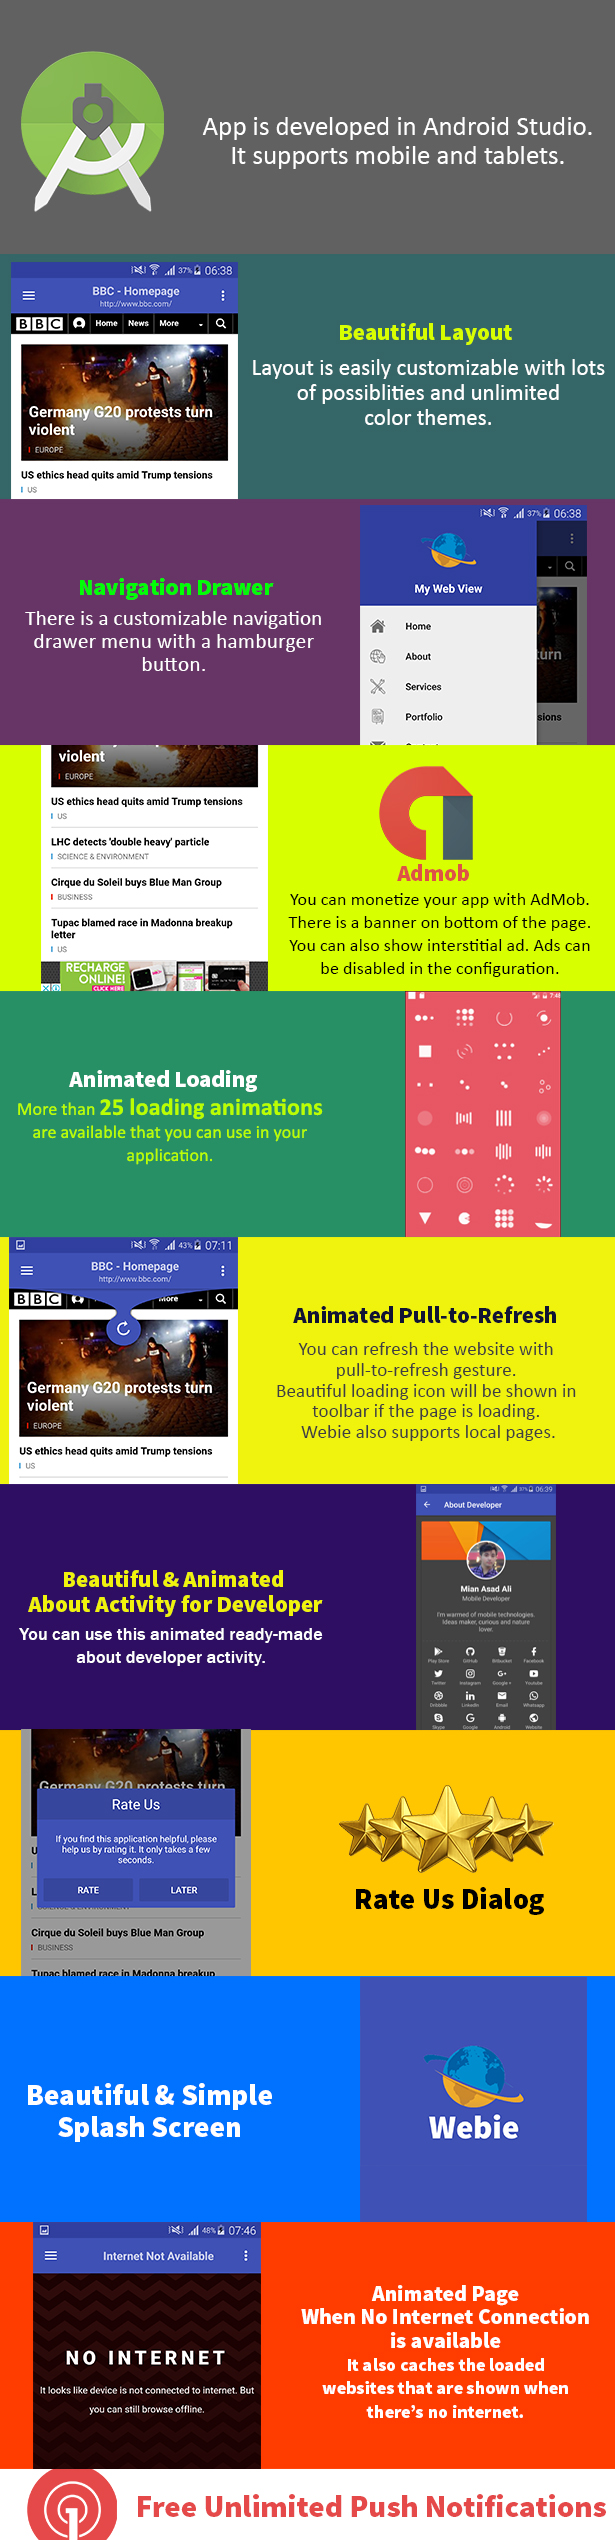 Webie - Animated WebView App for Android with Push Notification, AdMob & Lots of Animations - 1